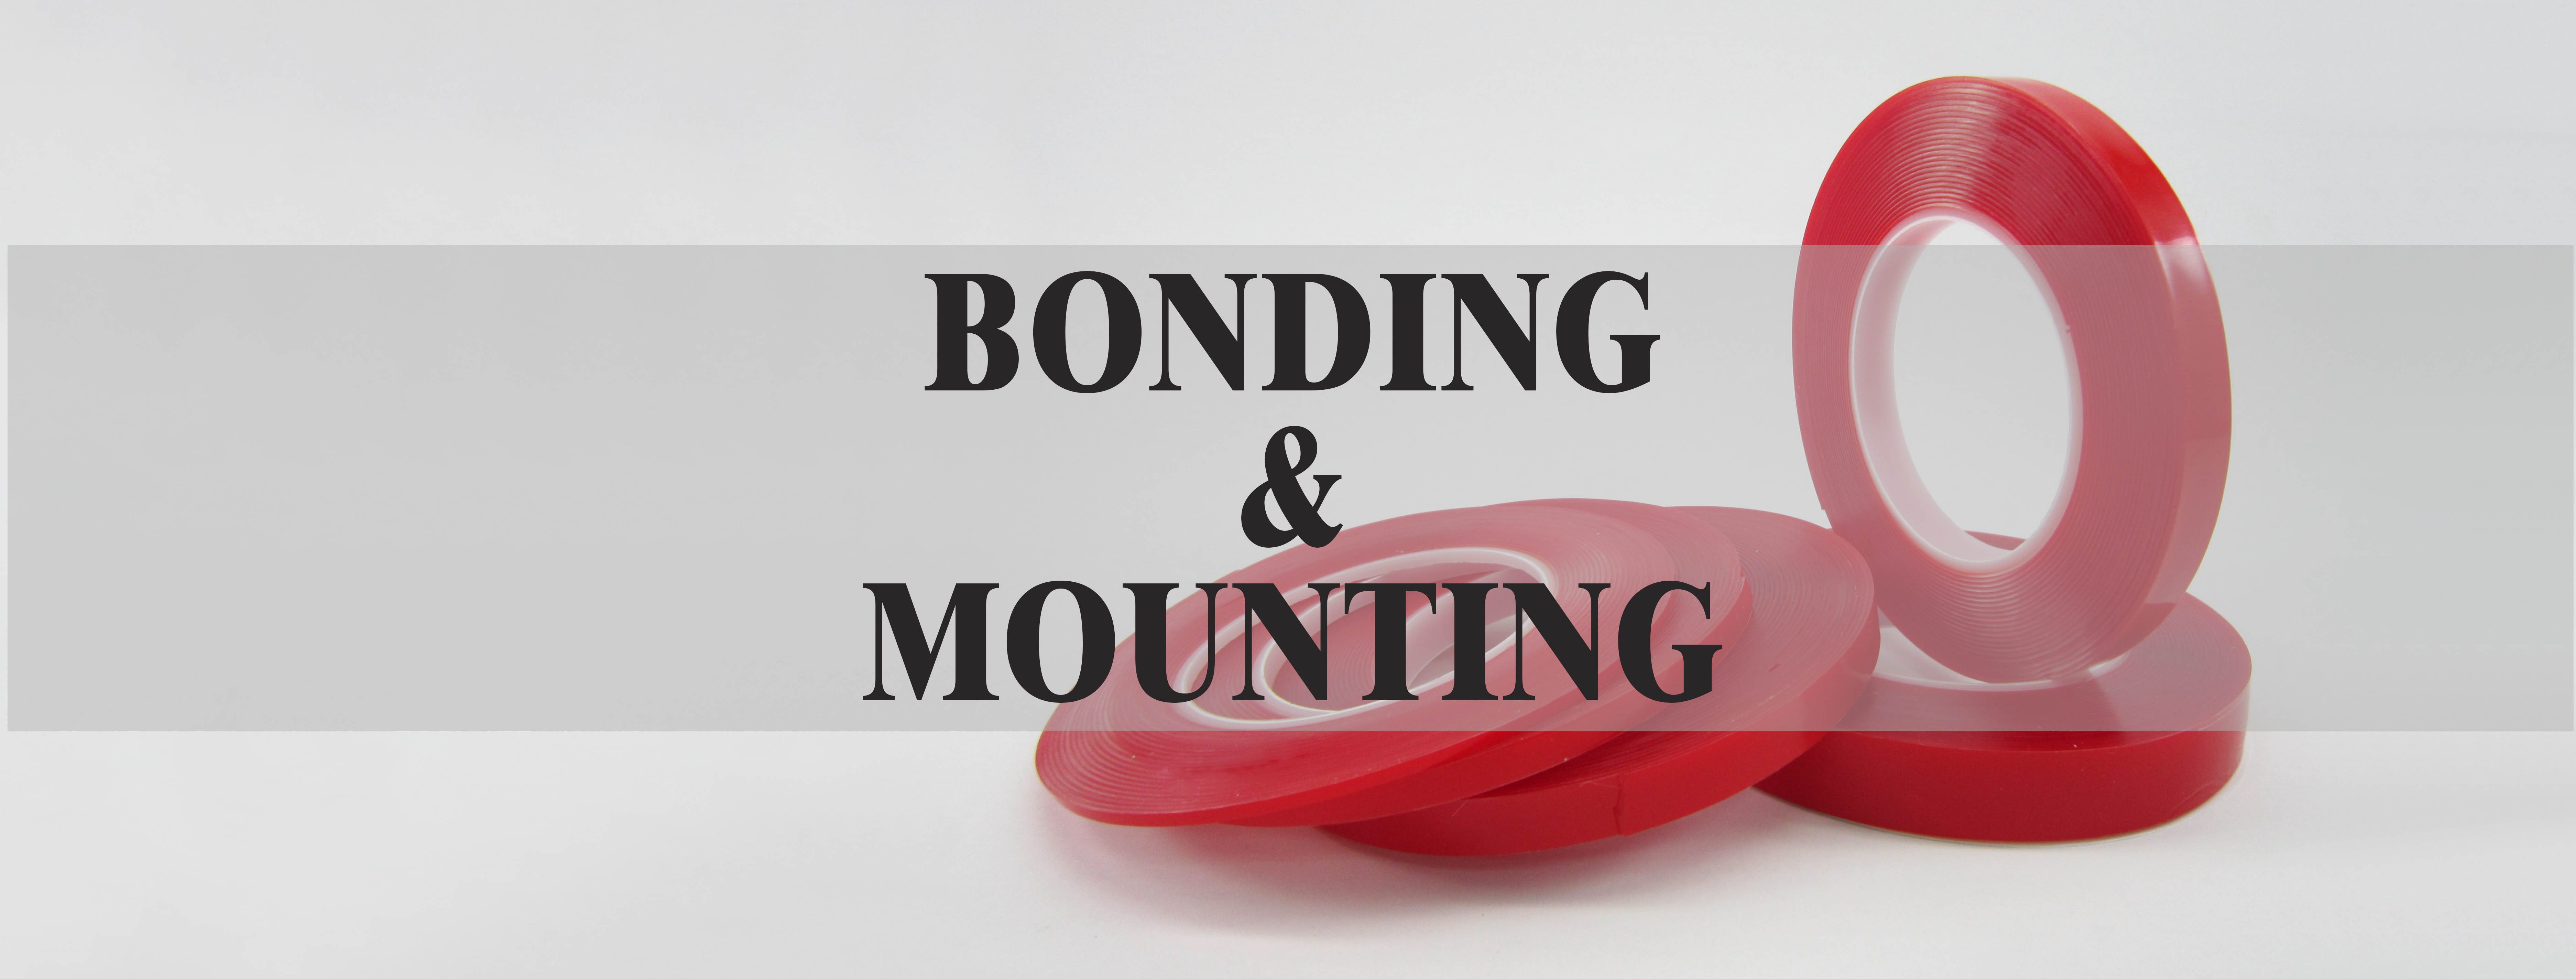 Bonding and Mounting